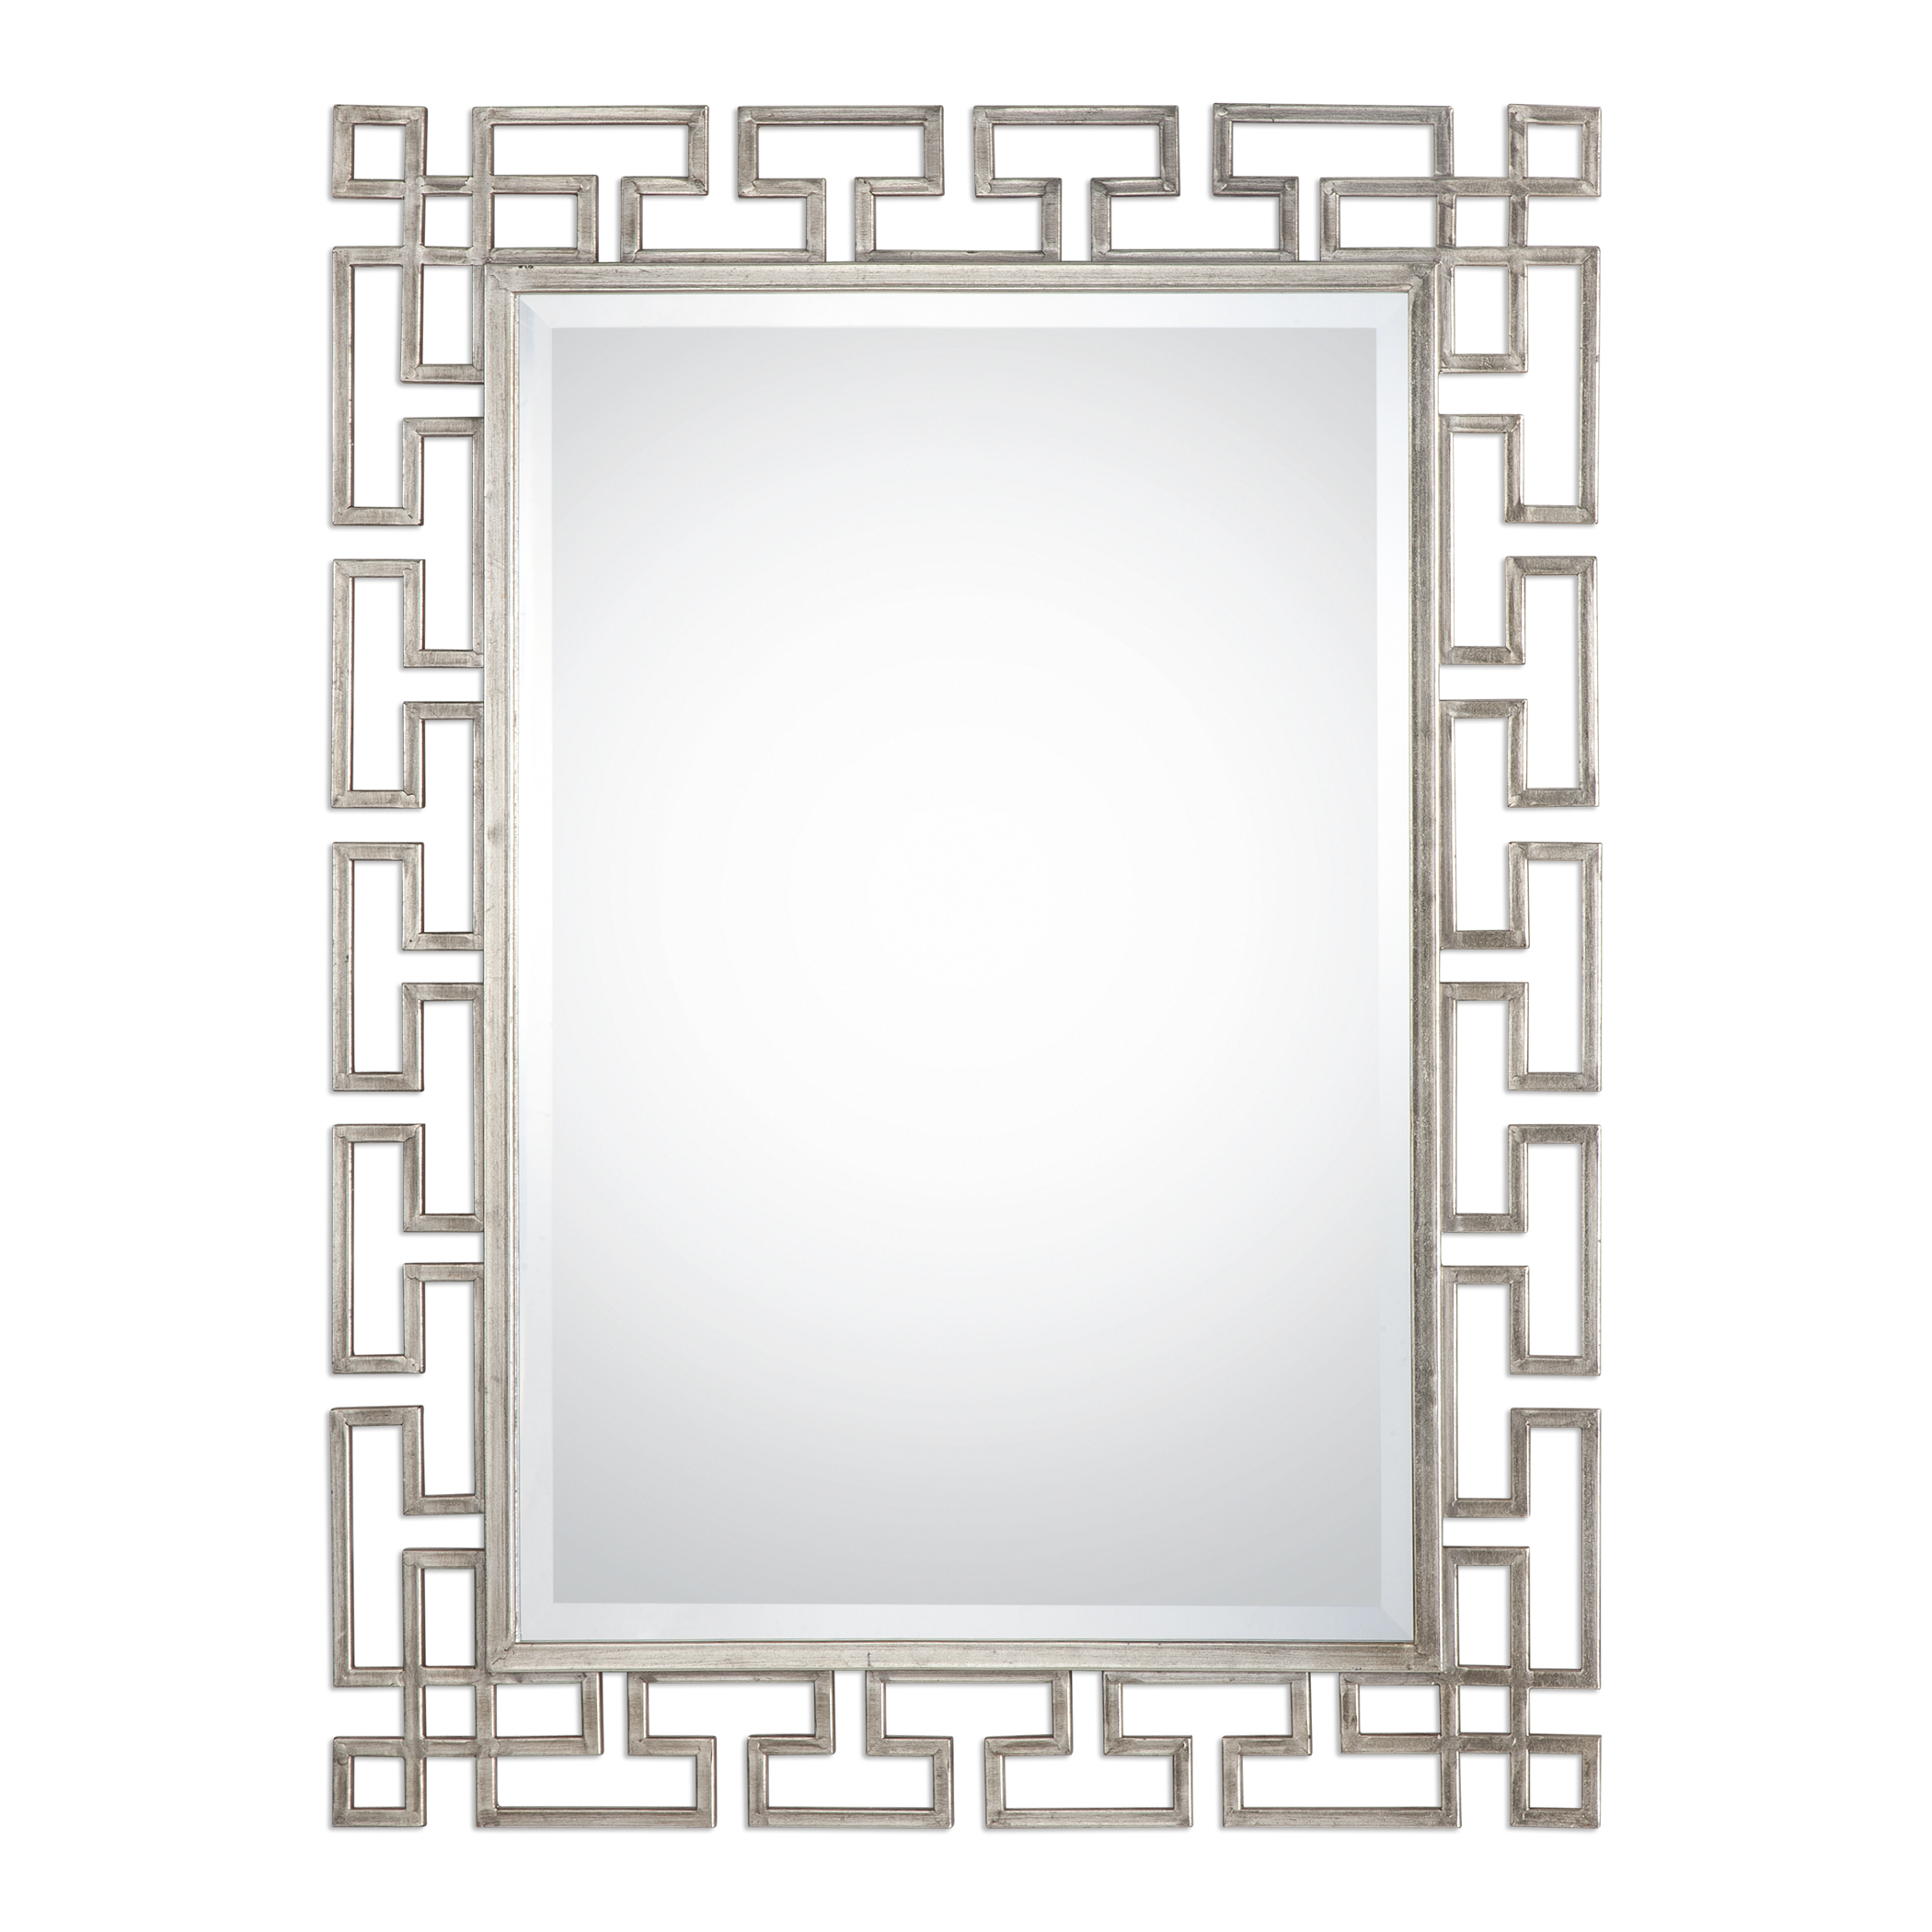 Uttermost Mirrors Agata Silver Mirror - Item Number: 09089